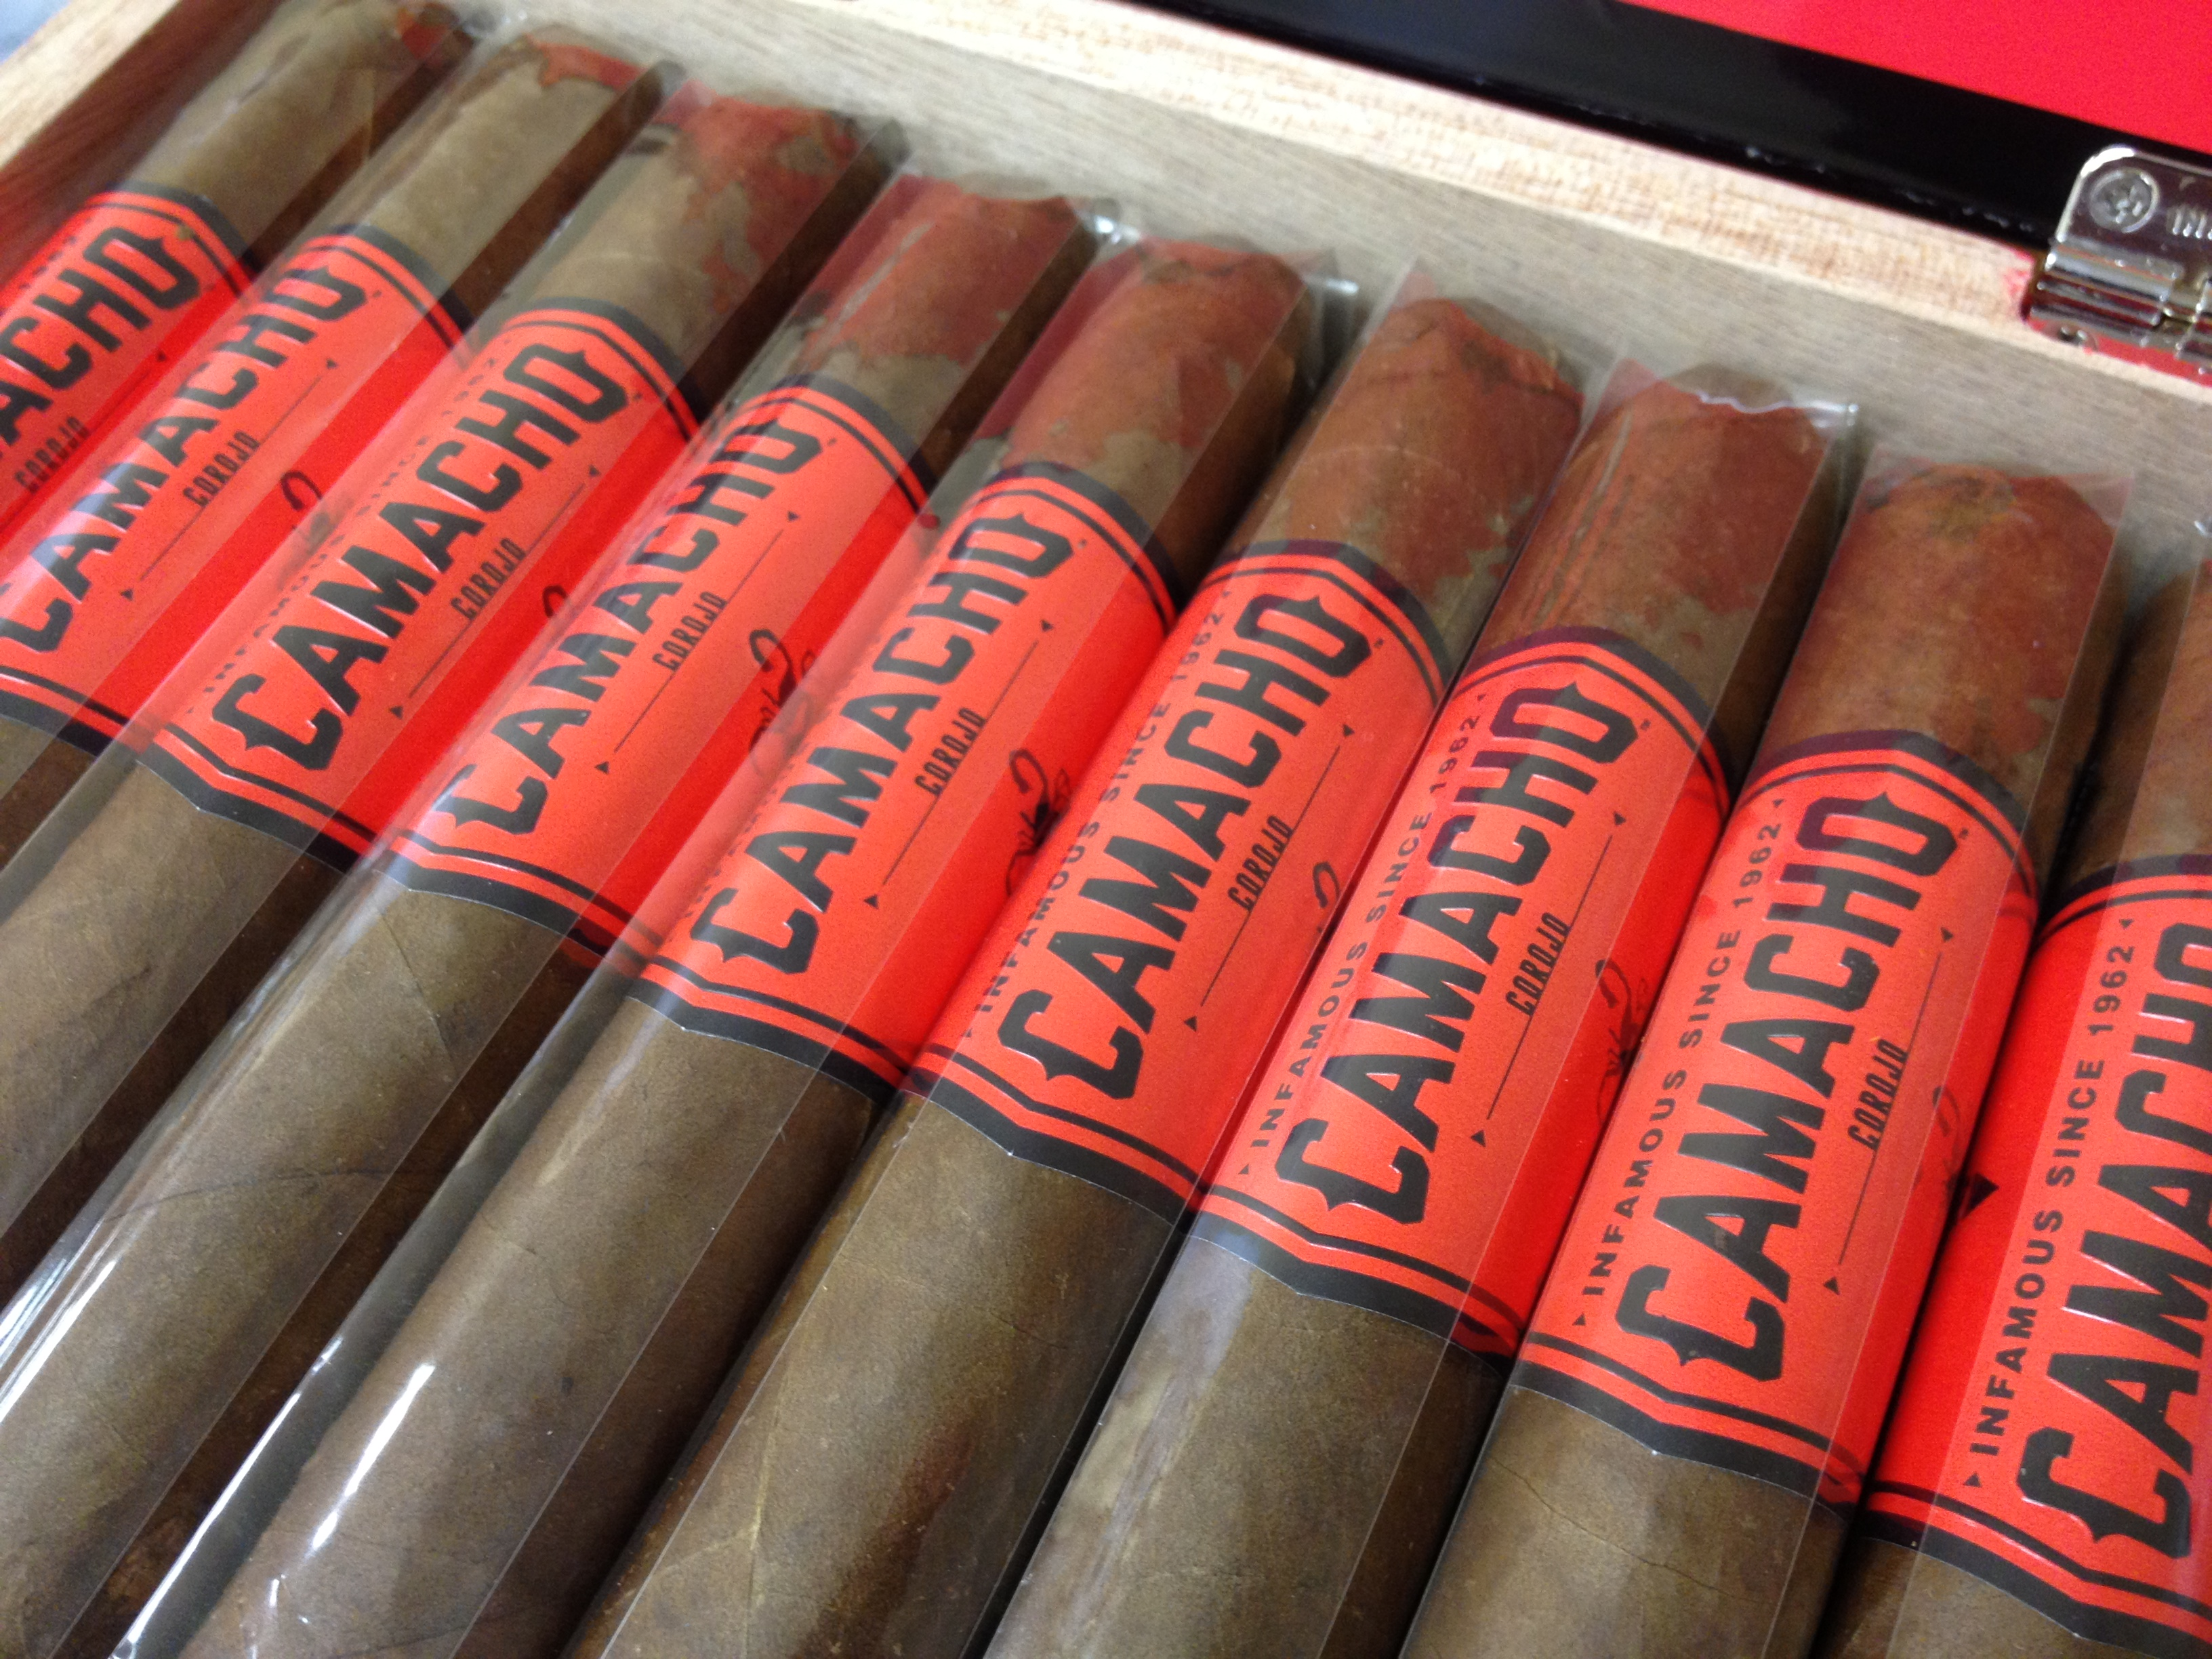 camacho corojo churchill cigars image